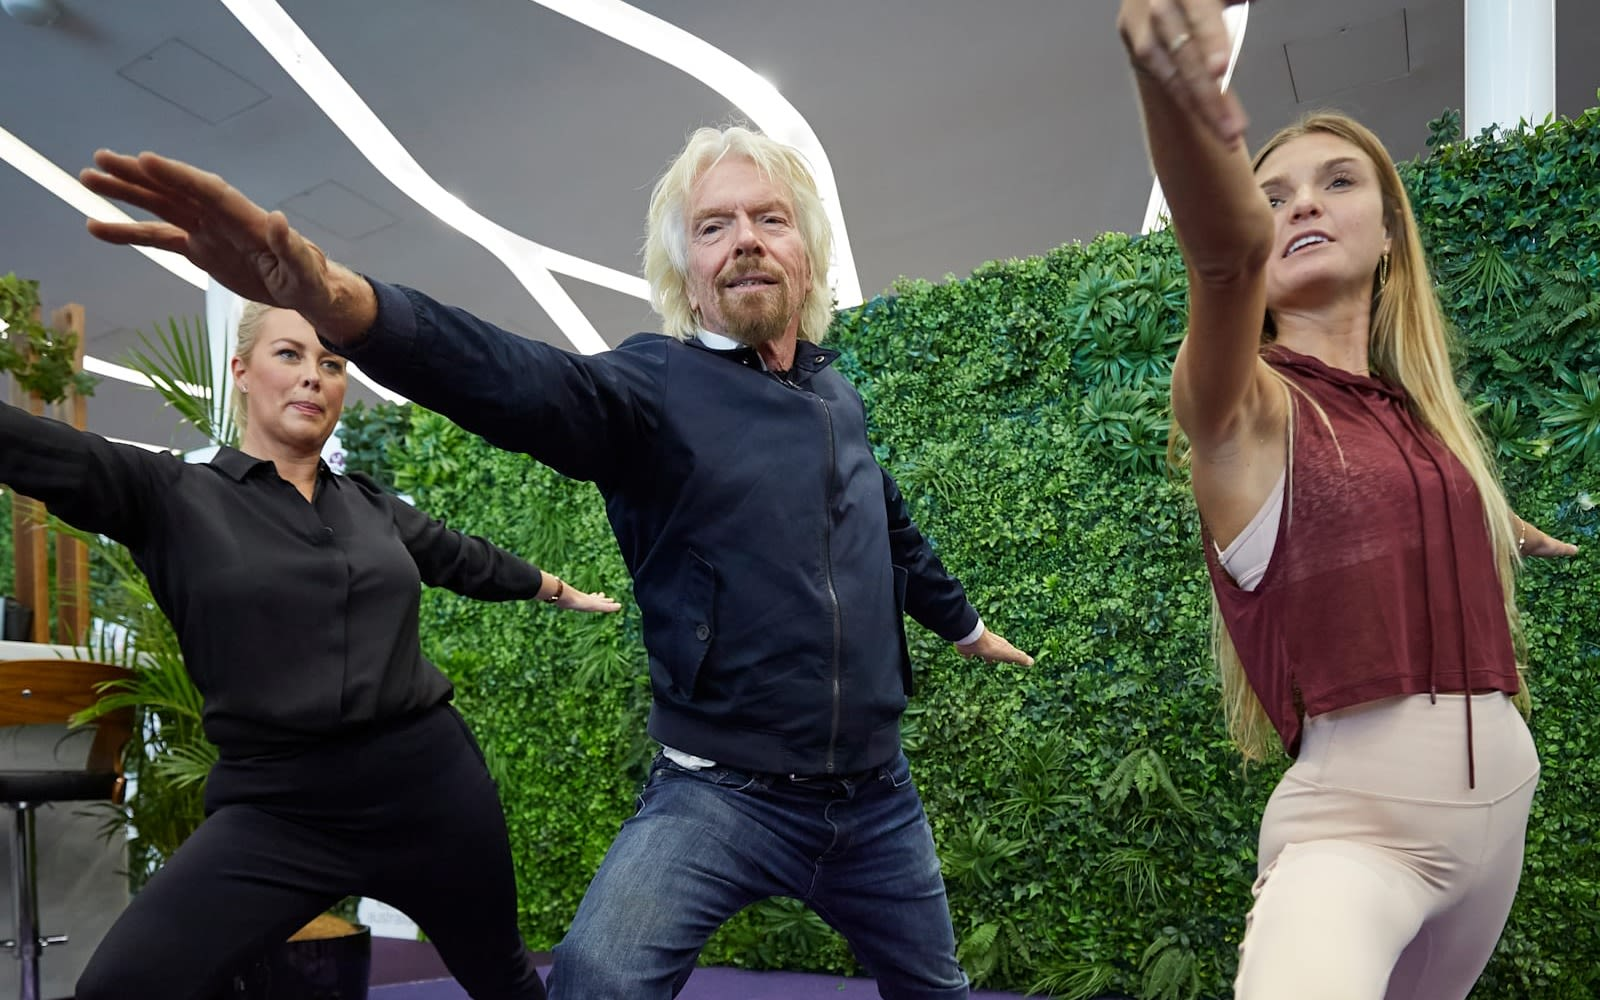 Richard Branson practices yoga with two female instructors in the Virgin Australia lounge